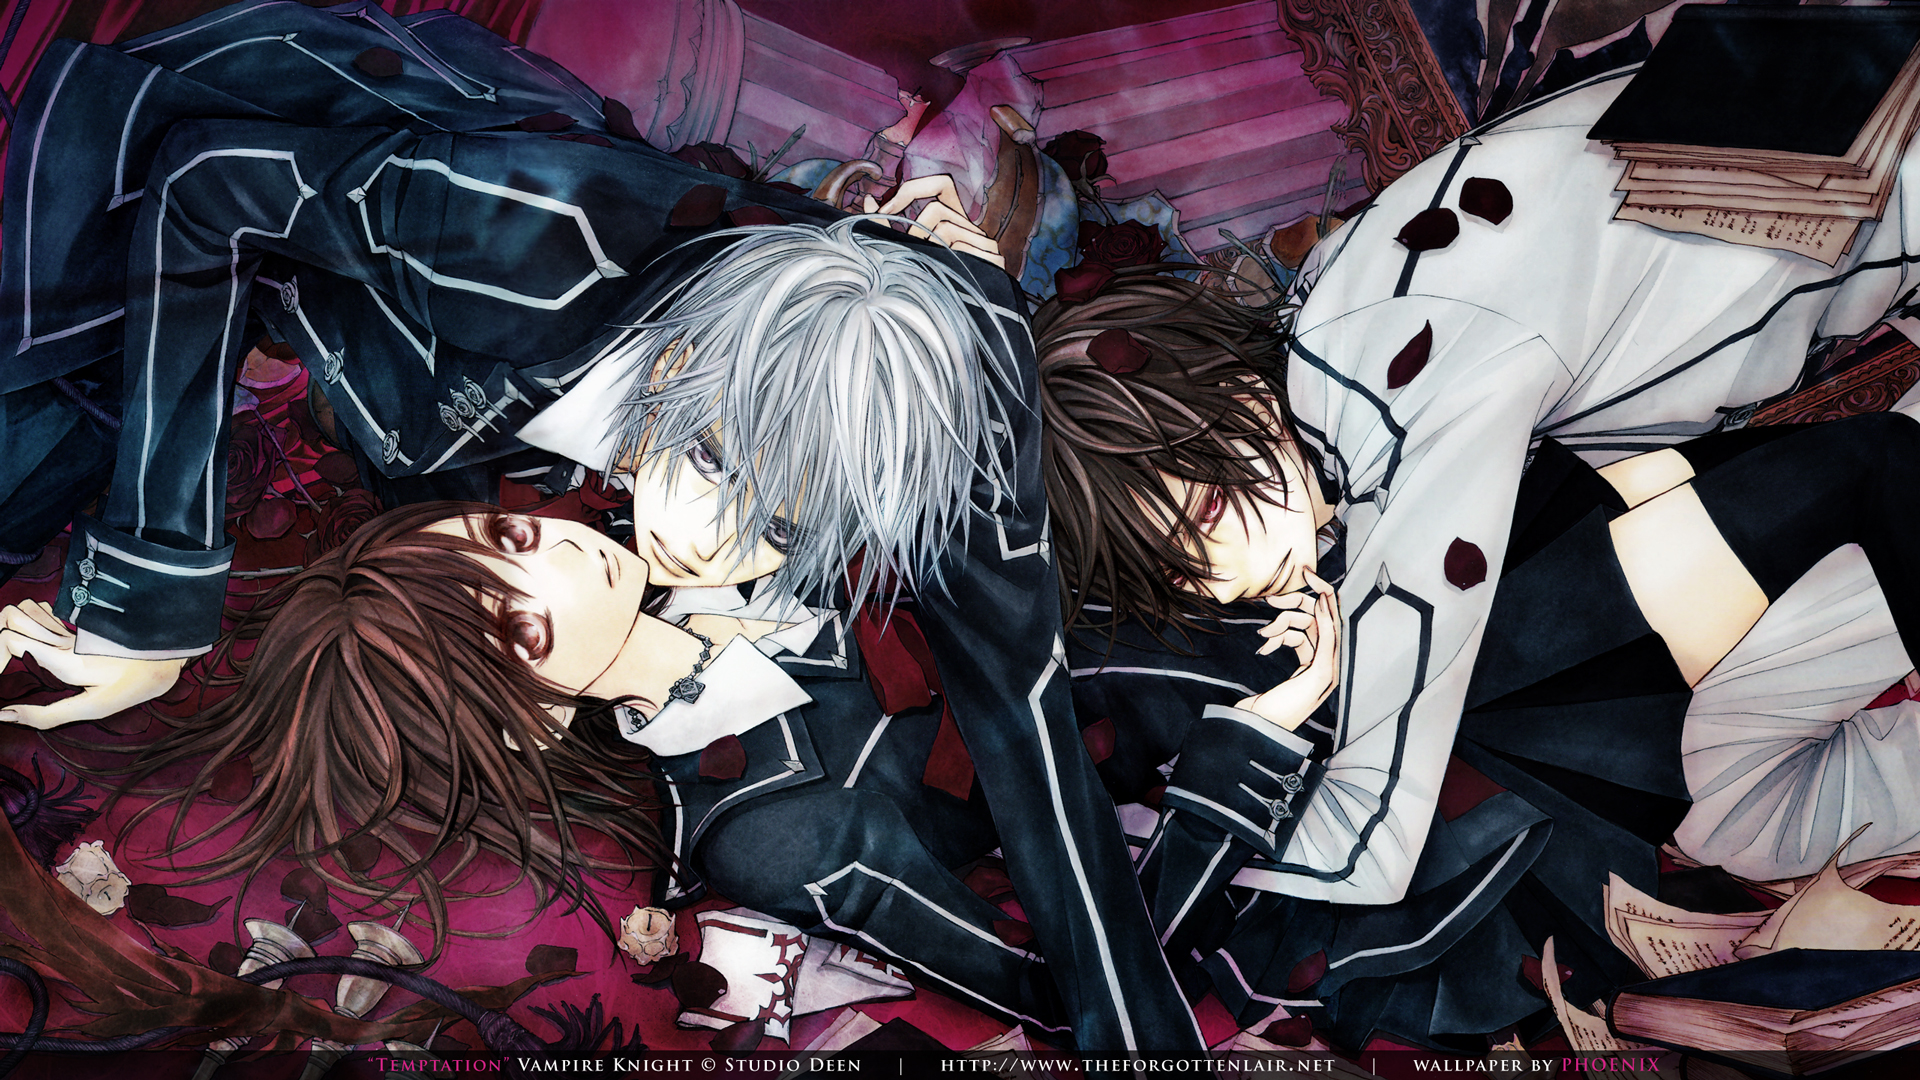 vampire knight wallpaper hd - photo #12